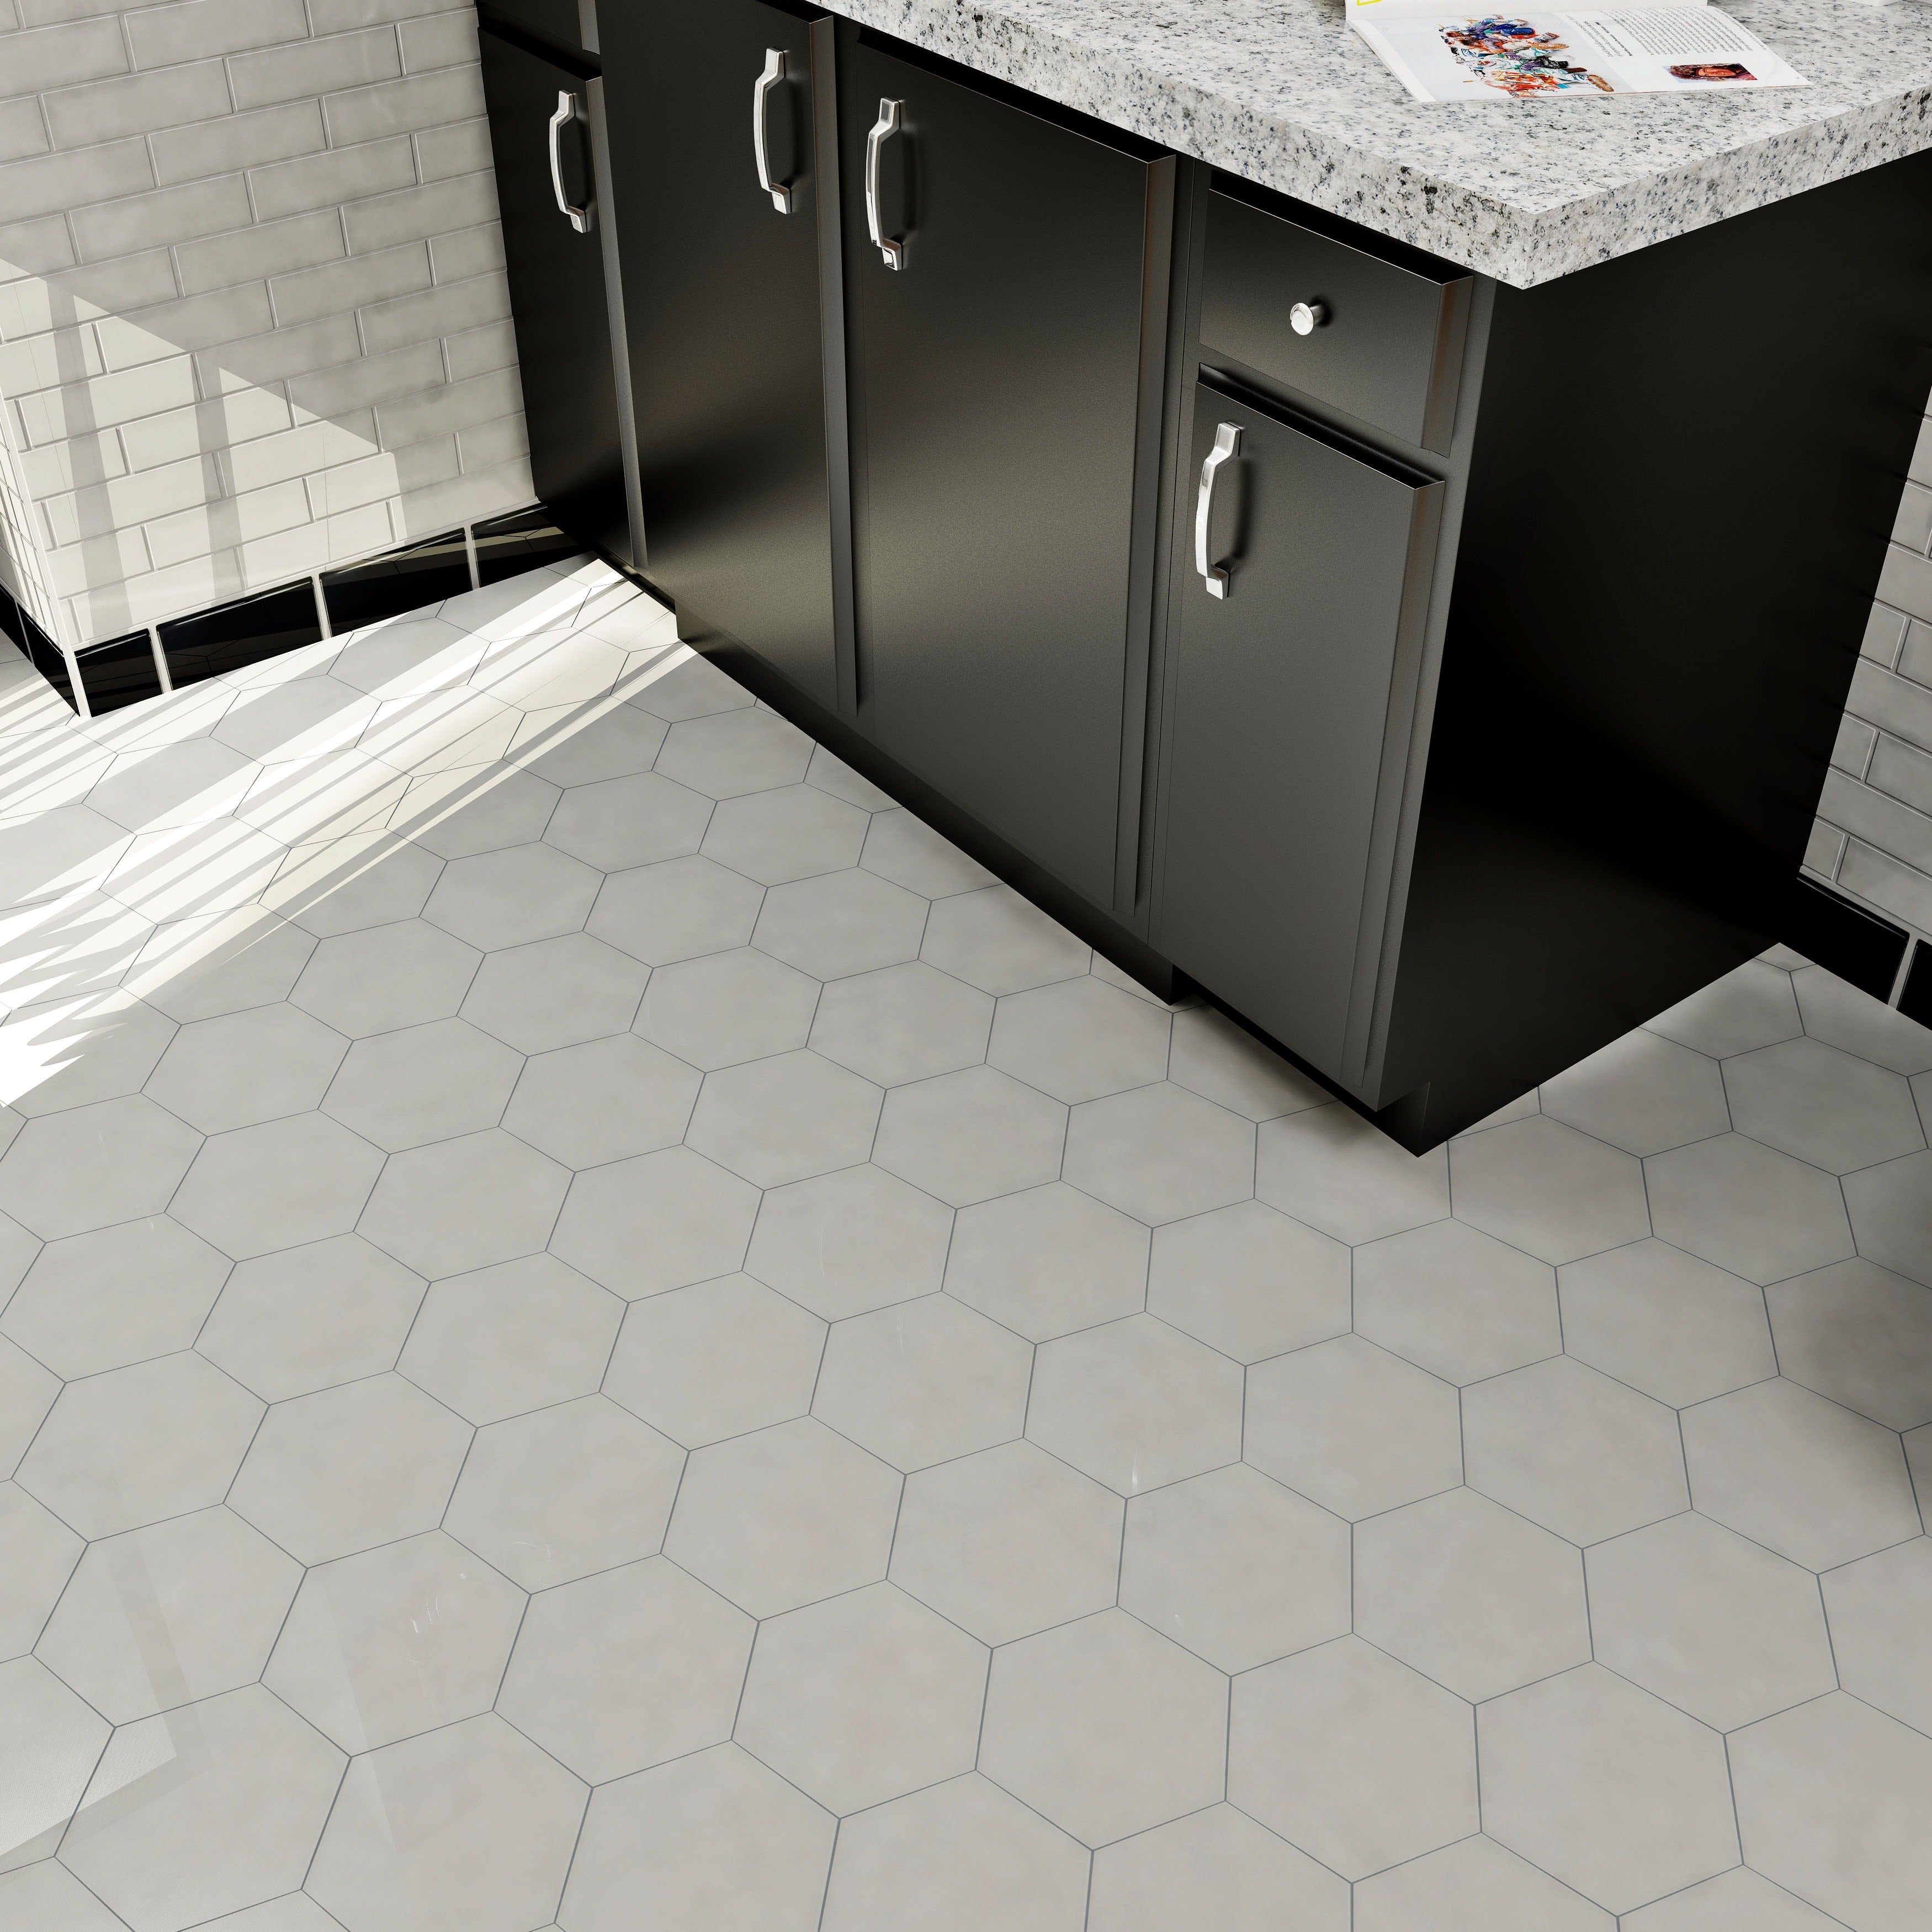 Somertile 7x8 inch hextile glossy grey ceramic floor and wall tile somertile 7x8 inch hextile glossy grey ceramic floor and wall tile 14 tiles44 sqft free shipping on orders over 45 overstock 15742524 dailygadgetfo Choice Image